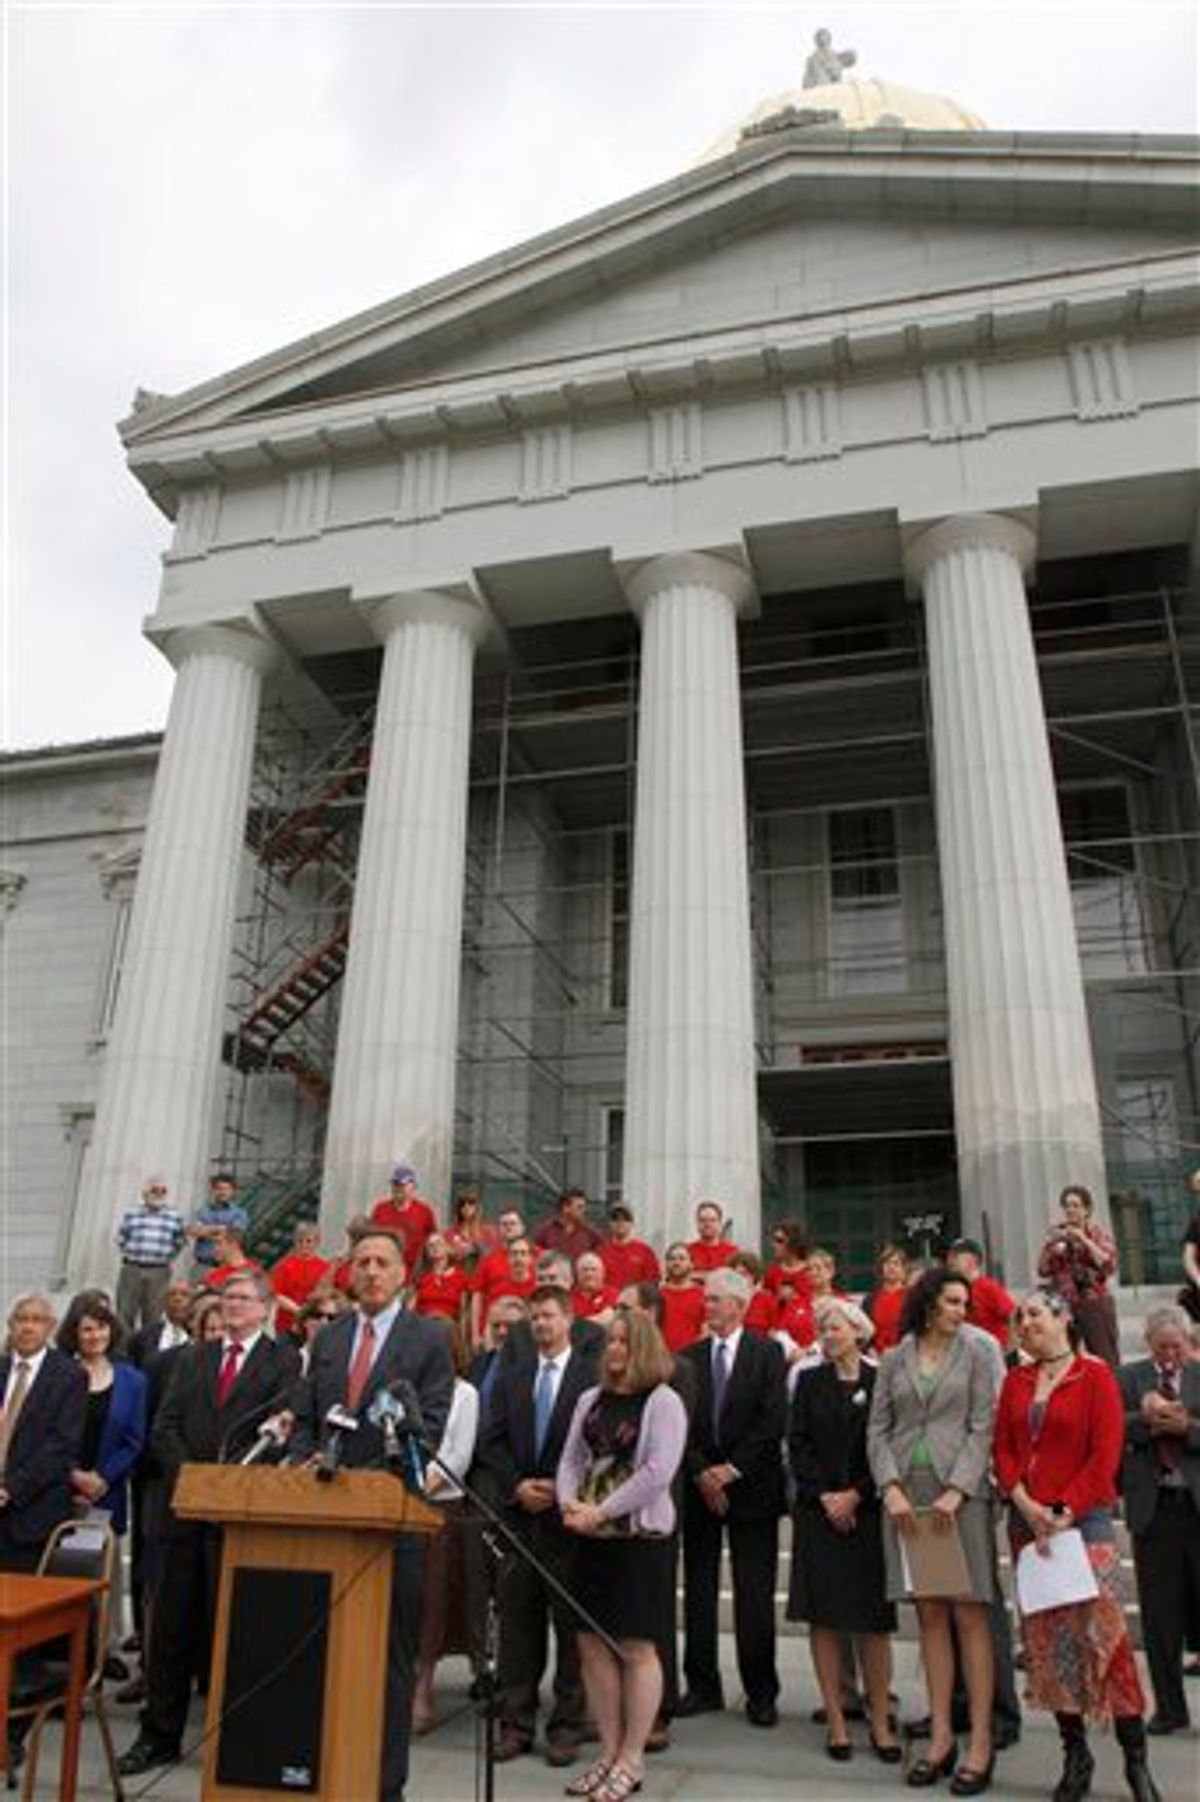 Gov. Peter Shumlin speaks on the steps of the Statehouse prior to signing the health care bill on Thursday, May 26, 2011 in Montpelier, Vt. (AP Photo/Toby Talbot) (AP)